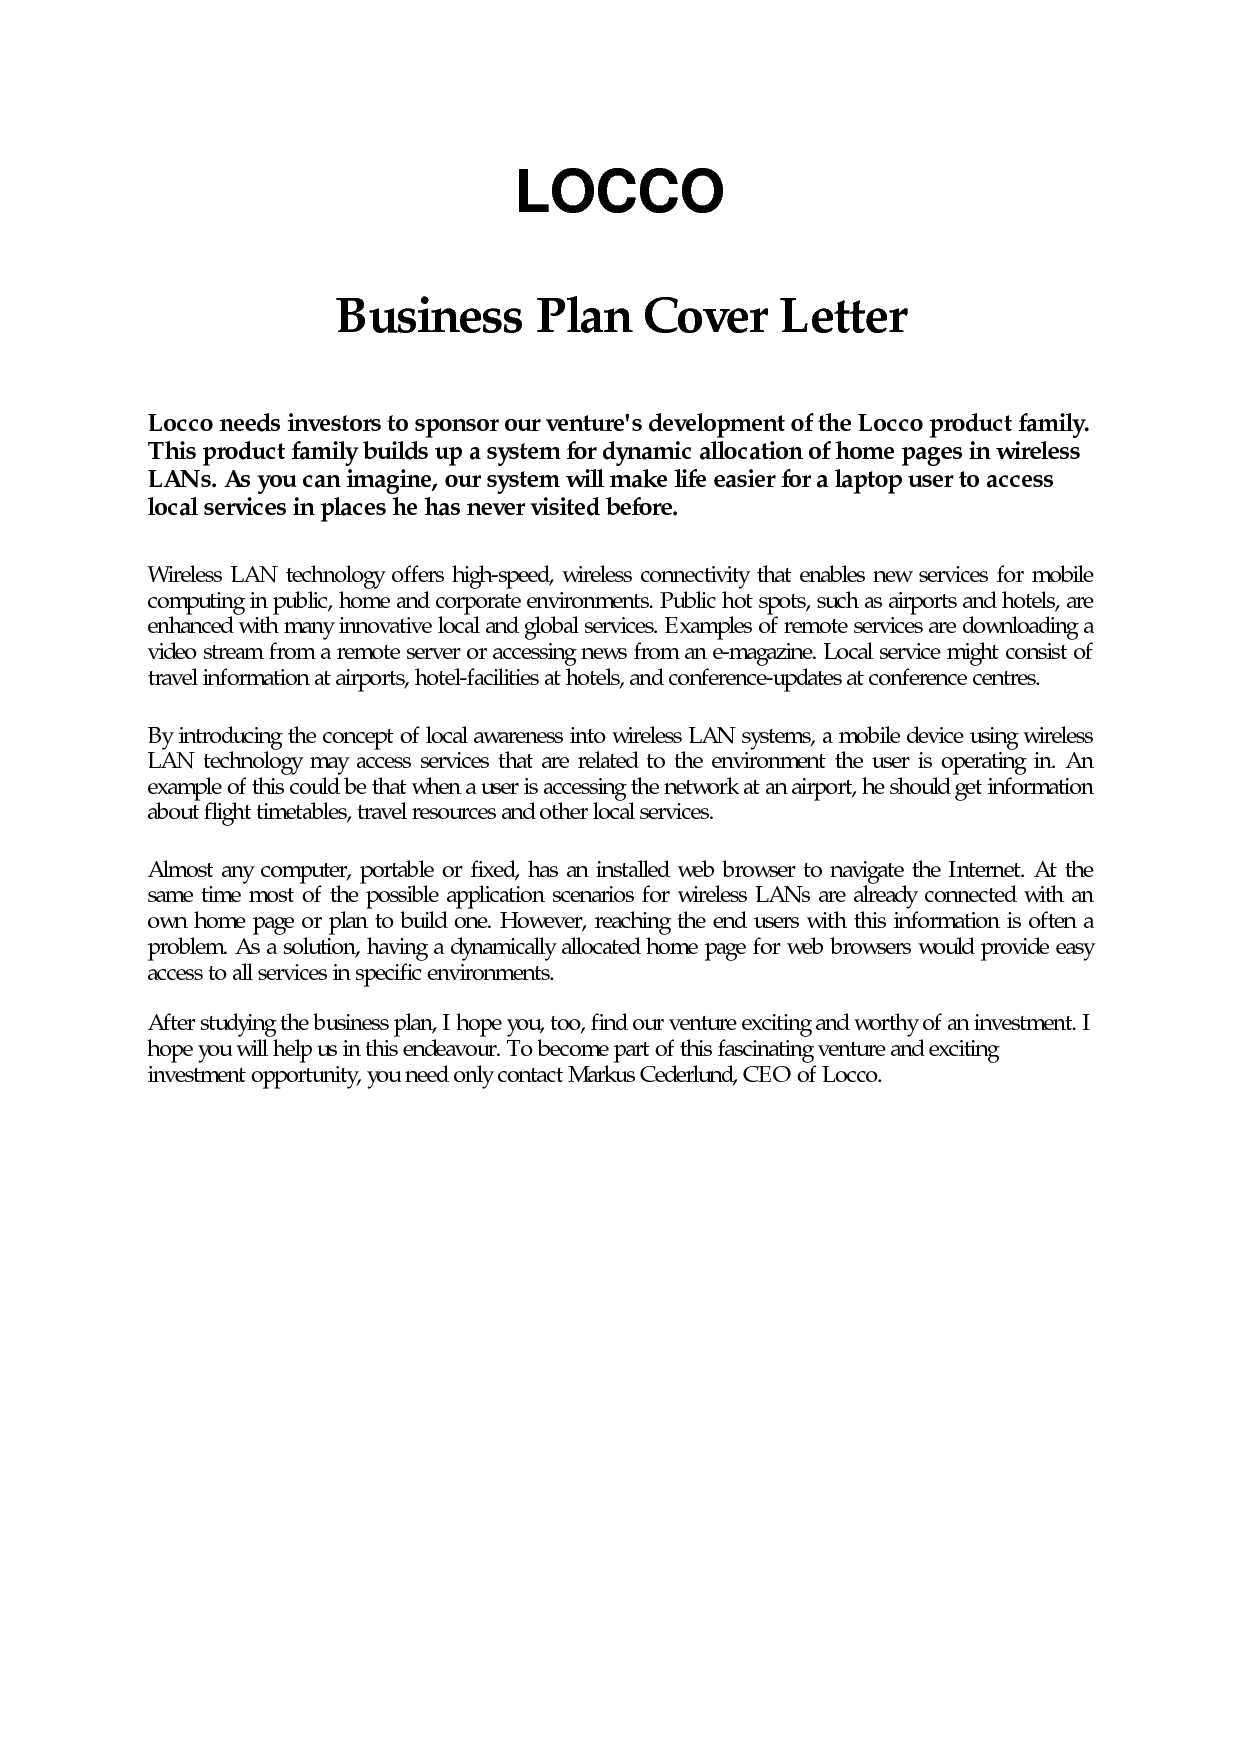 Business Plan Cover Letter Sample Free Example Page Examples in Business Proposal Cover Letter Format 22384